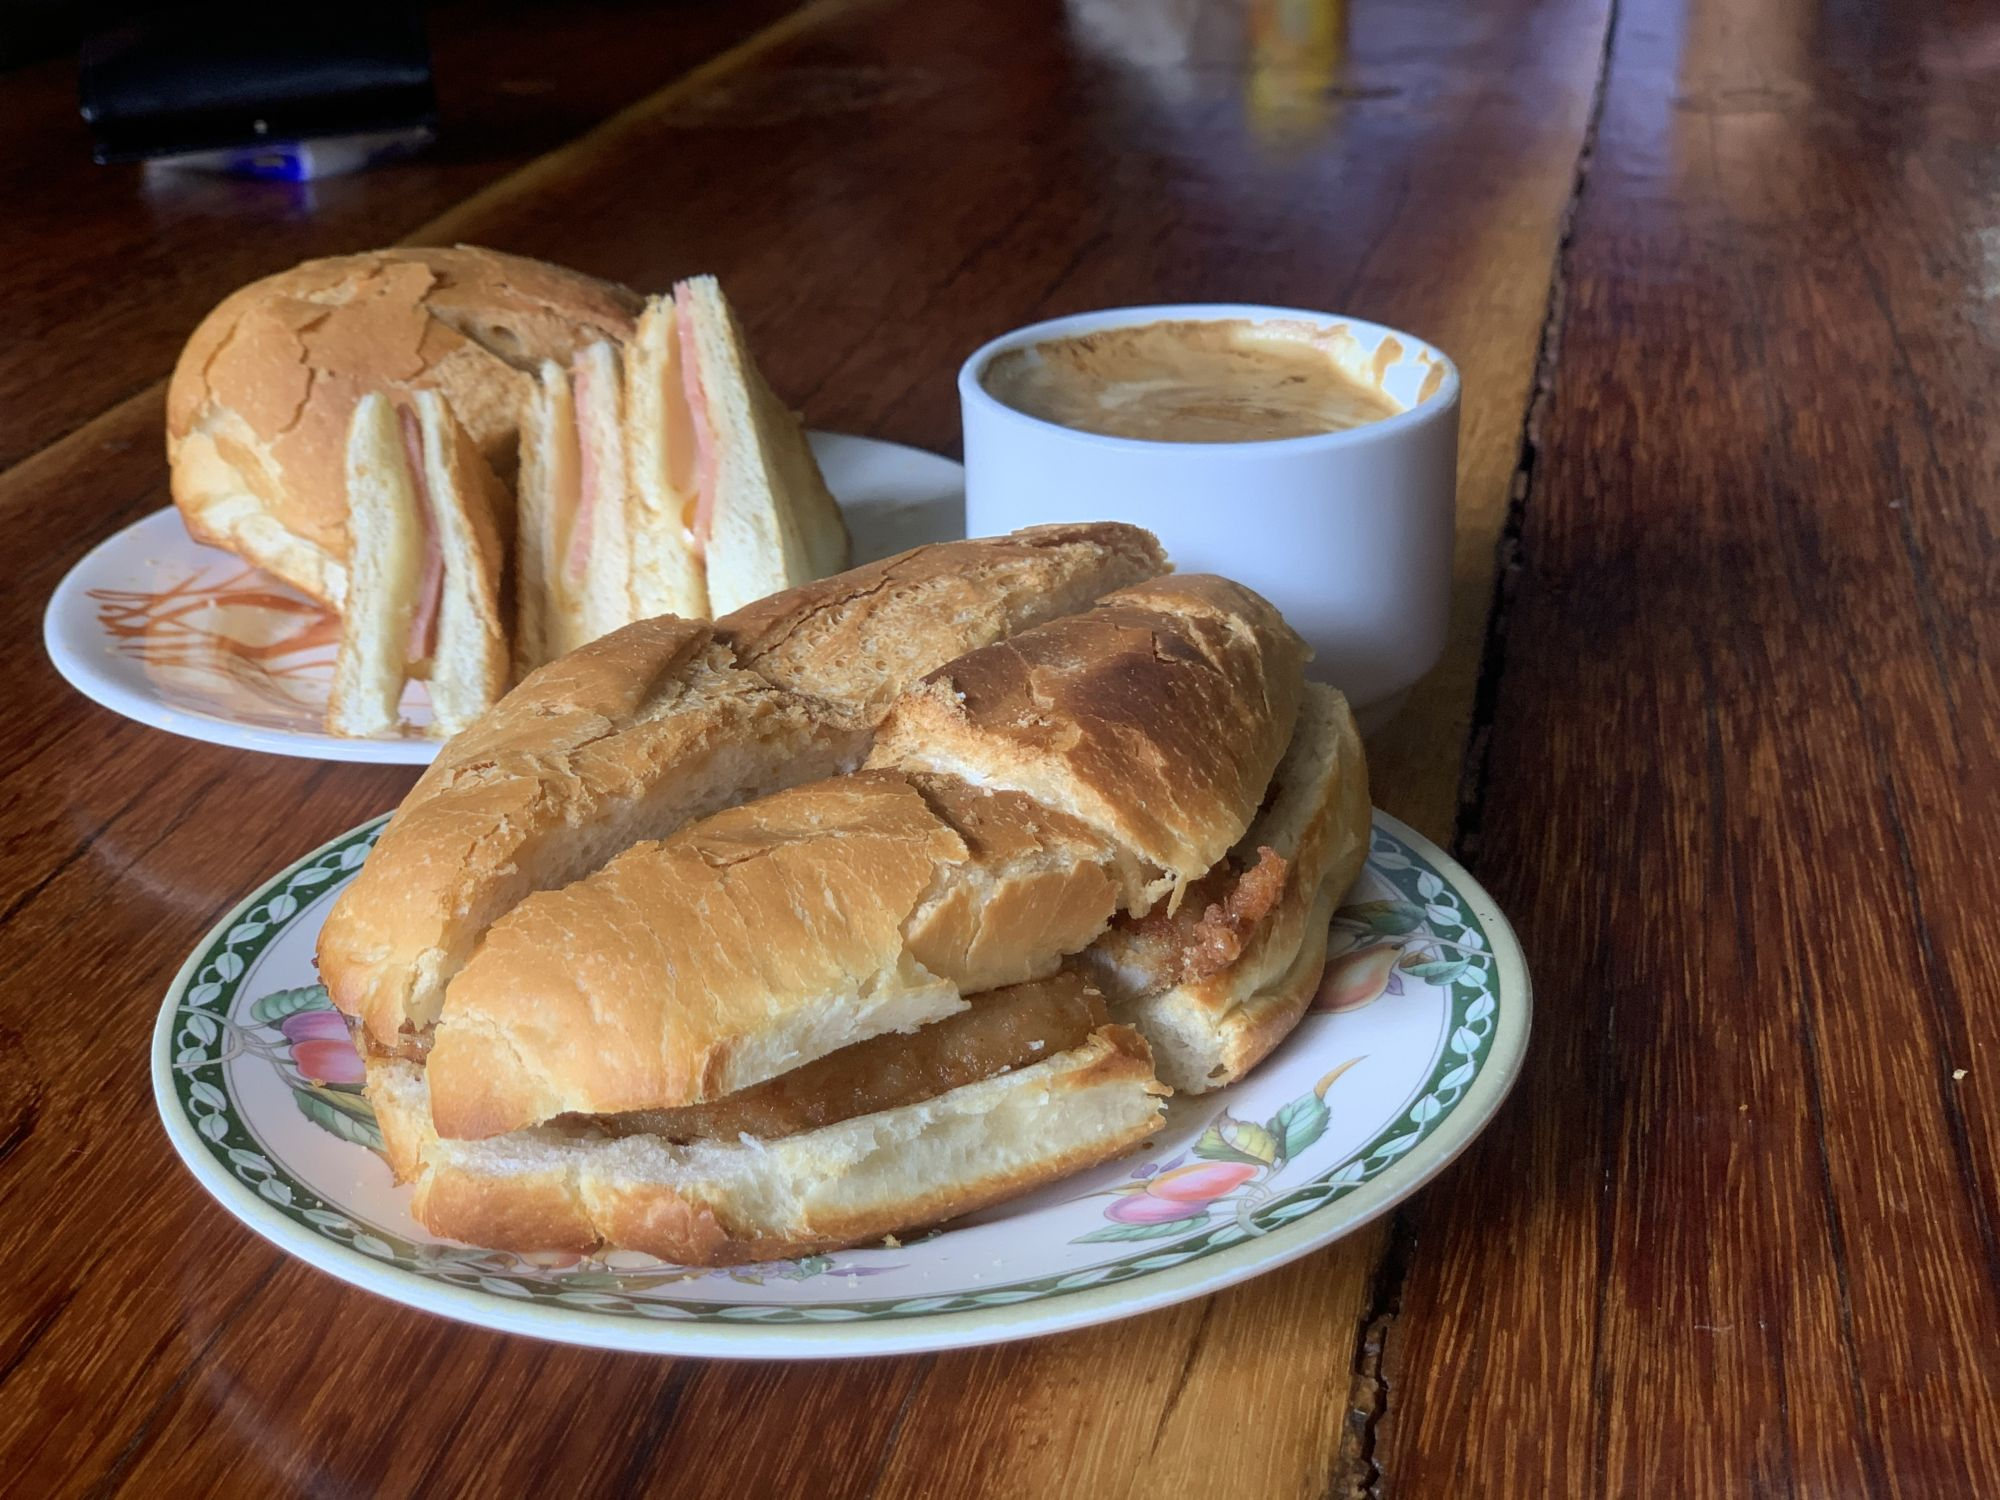 Pork Bun Sandwiches and Coffee from Hon Kee Cafe Macau Lifestyle